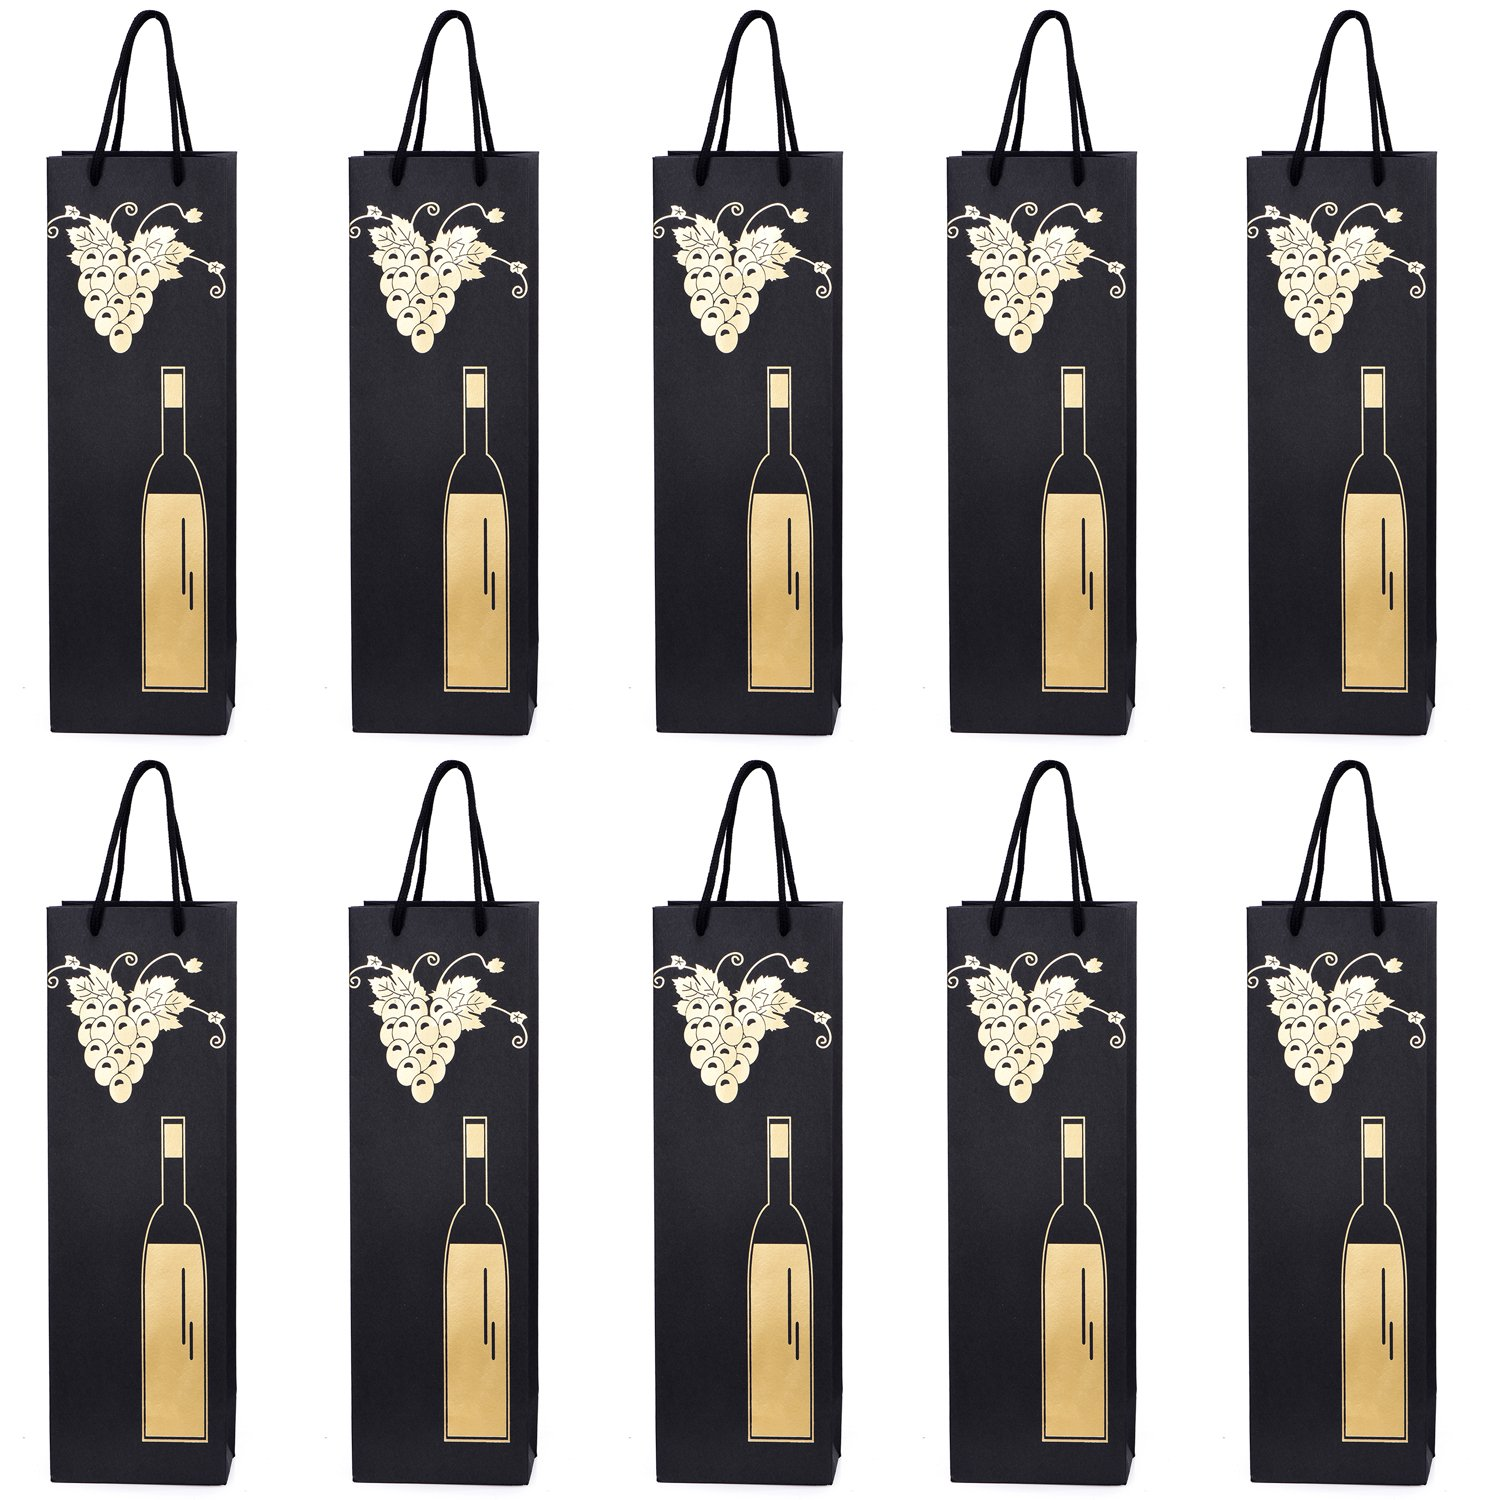 10 gift bags bottle bags for wine prosecco and champagne 15.75 x 4.72 x 3.54 inch - 40 x 12 x 9 cm - Congratulations II Tradict GmbH